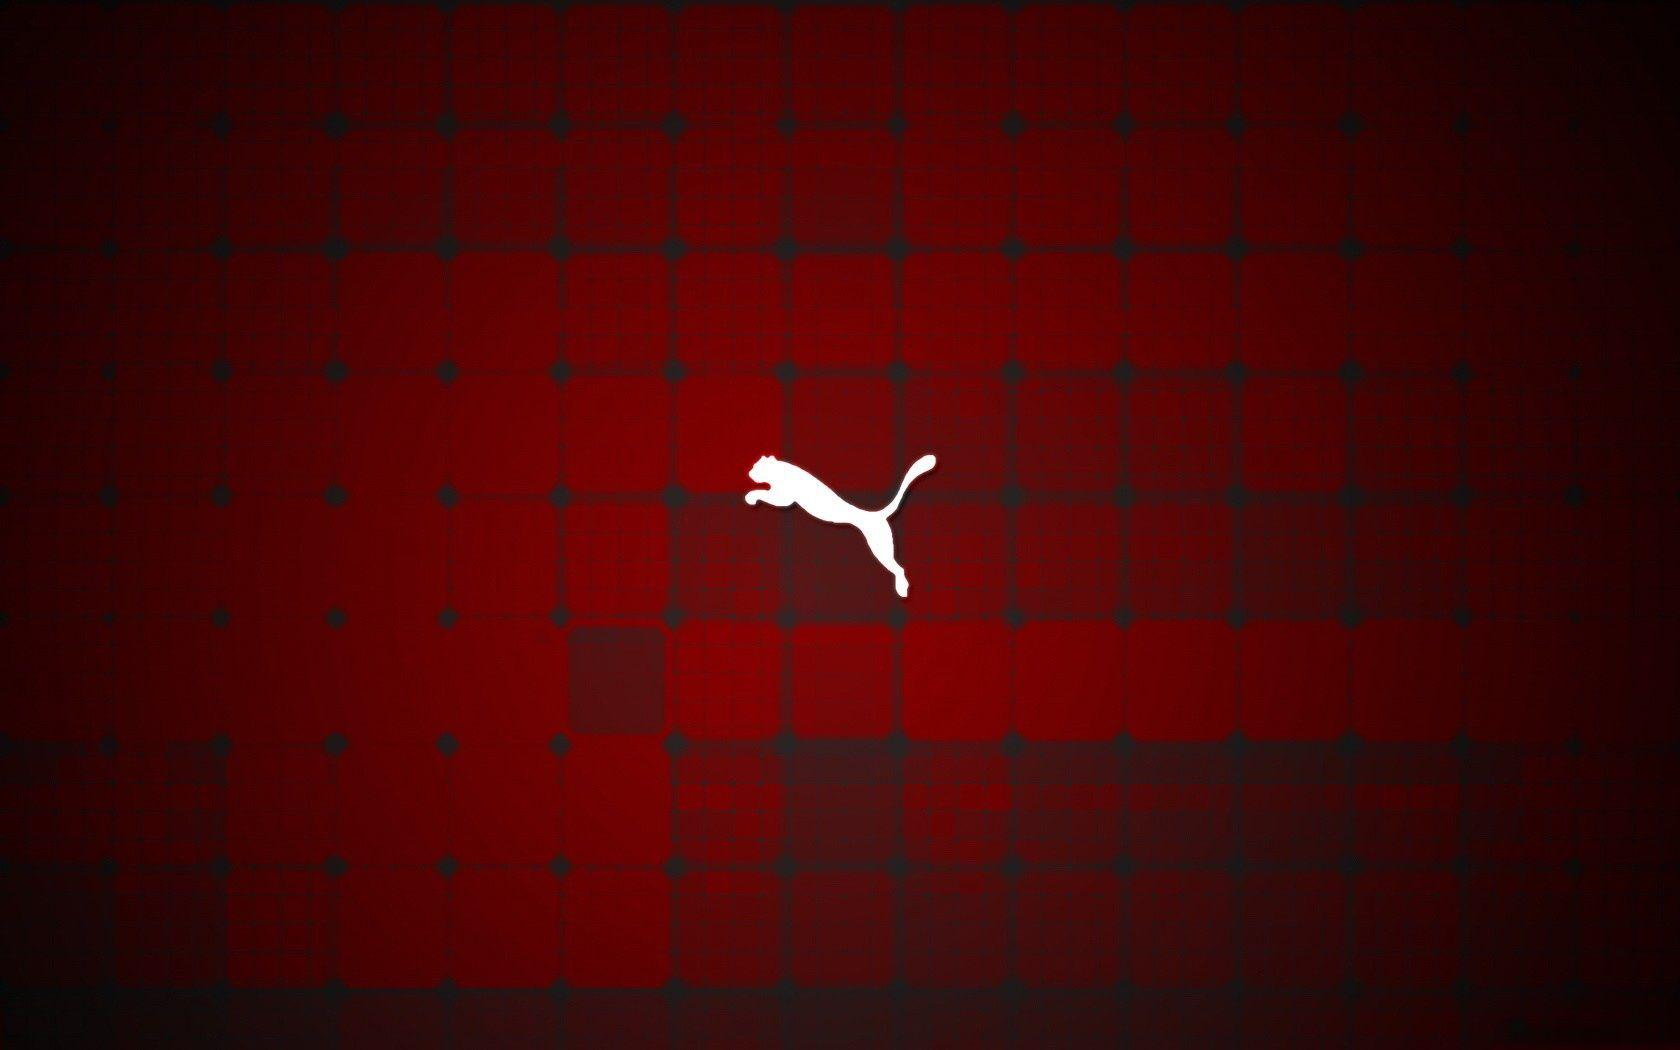 puma logo wallpaper 6jpg - photo #14